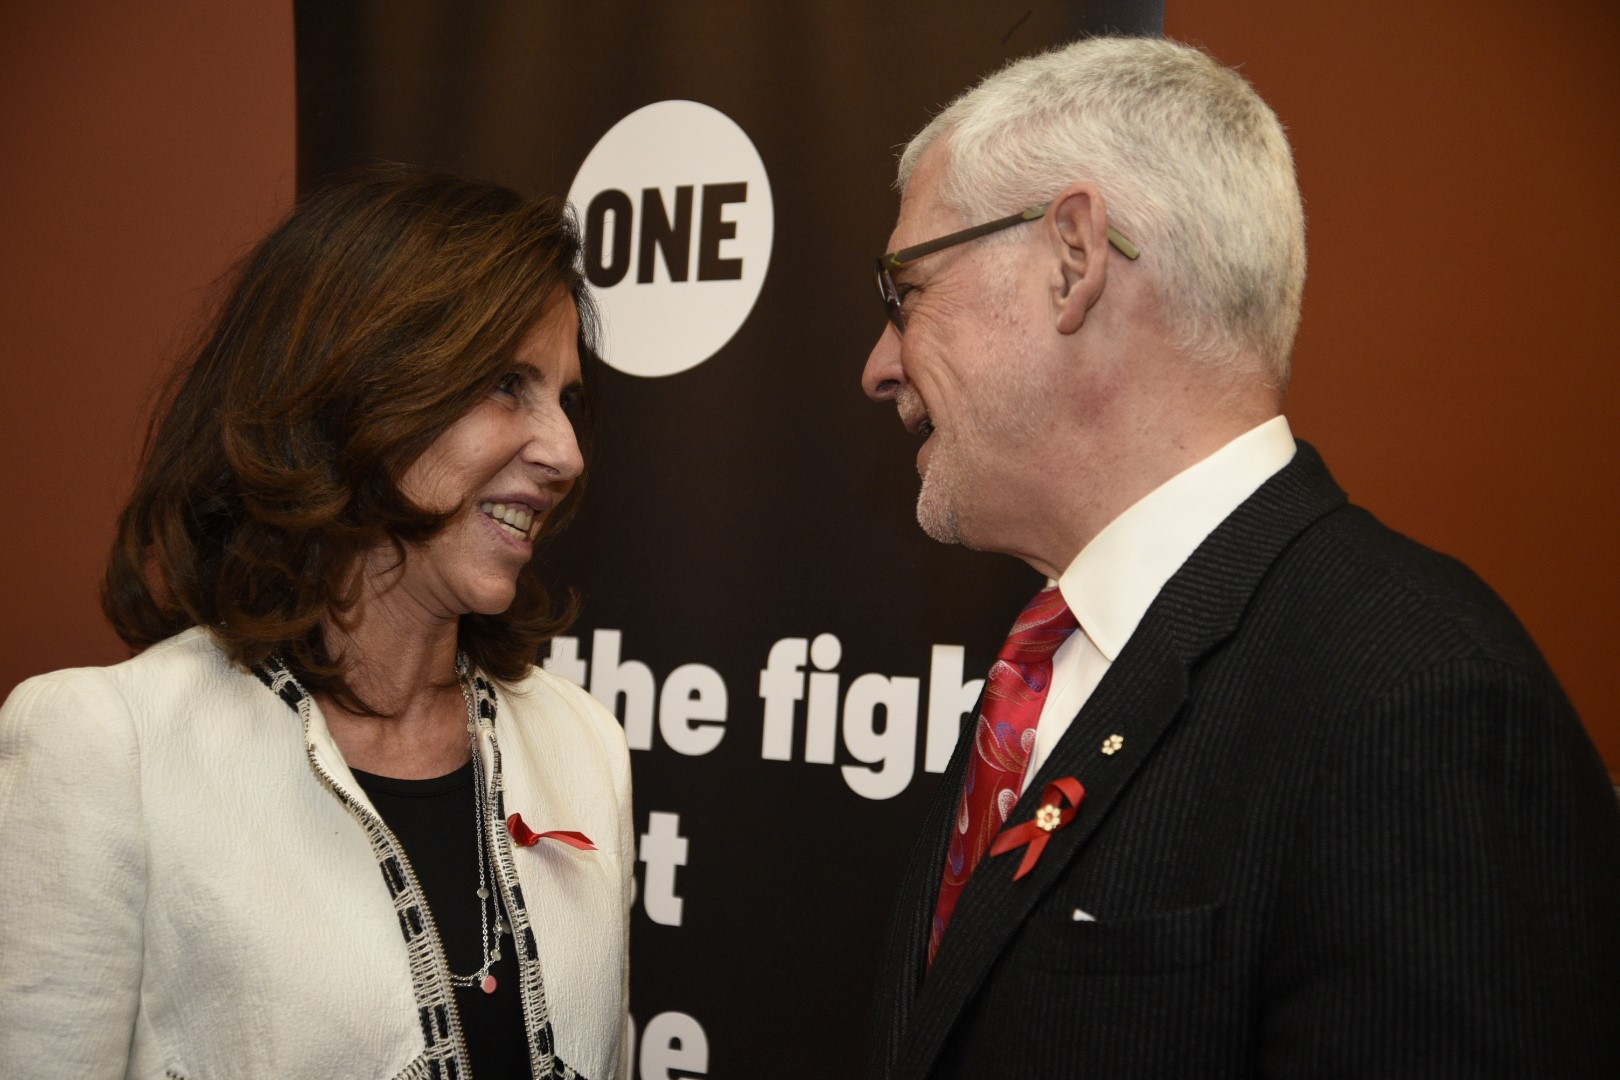 Her Excellency Kareen Rispal, Ambassador of France to Canada, discusses the Sixth Replenishment Conference for the Global Fund France will host in 2019, with leading HIV/AIDS researcher, Dr. Julio Montaner.